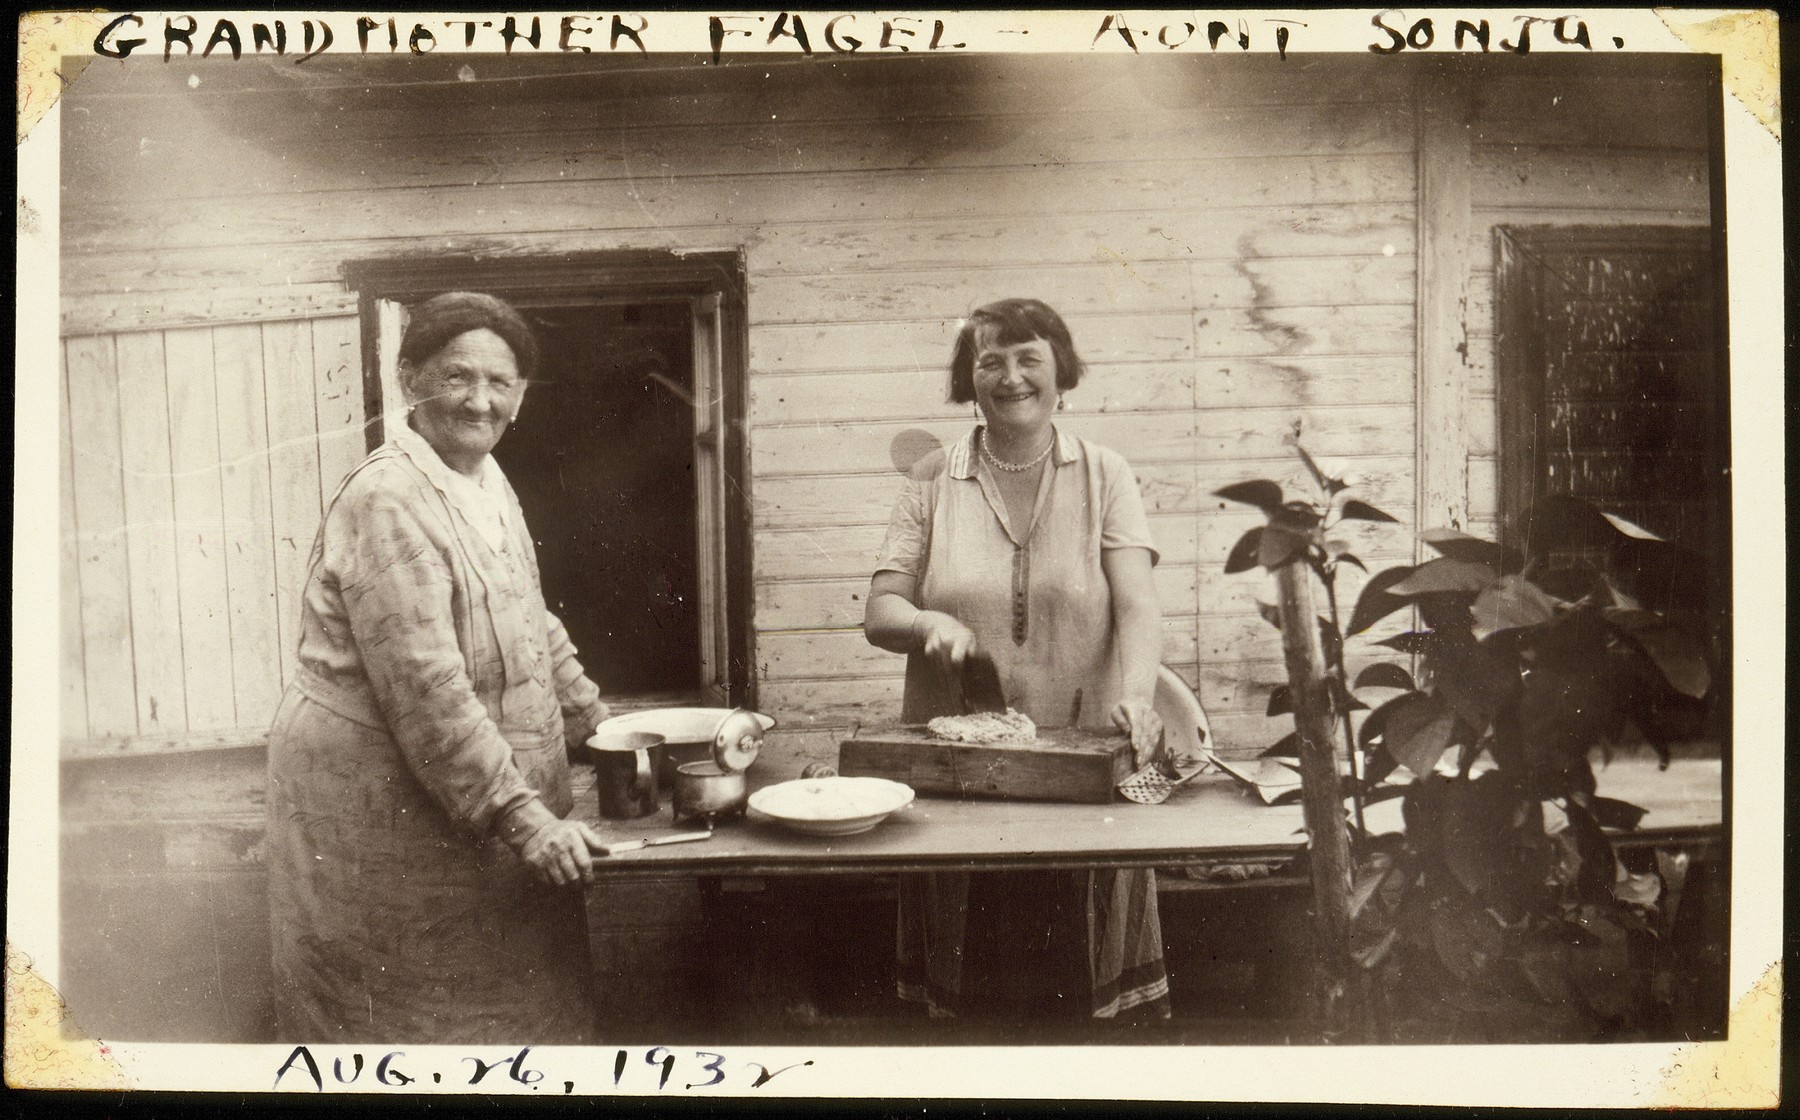 Feige Virshubski prepares a meal with her daughter, Sonia Saposnikow.